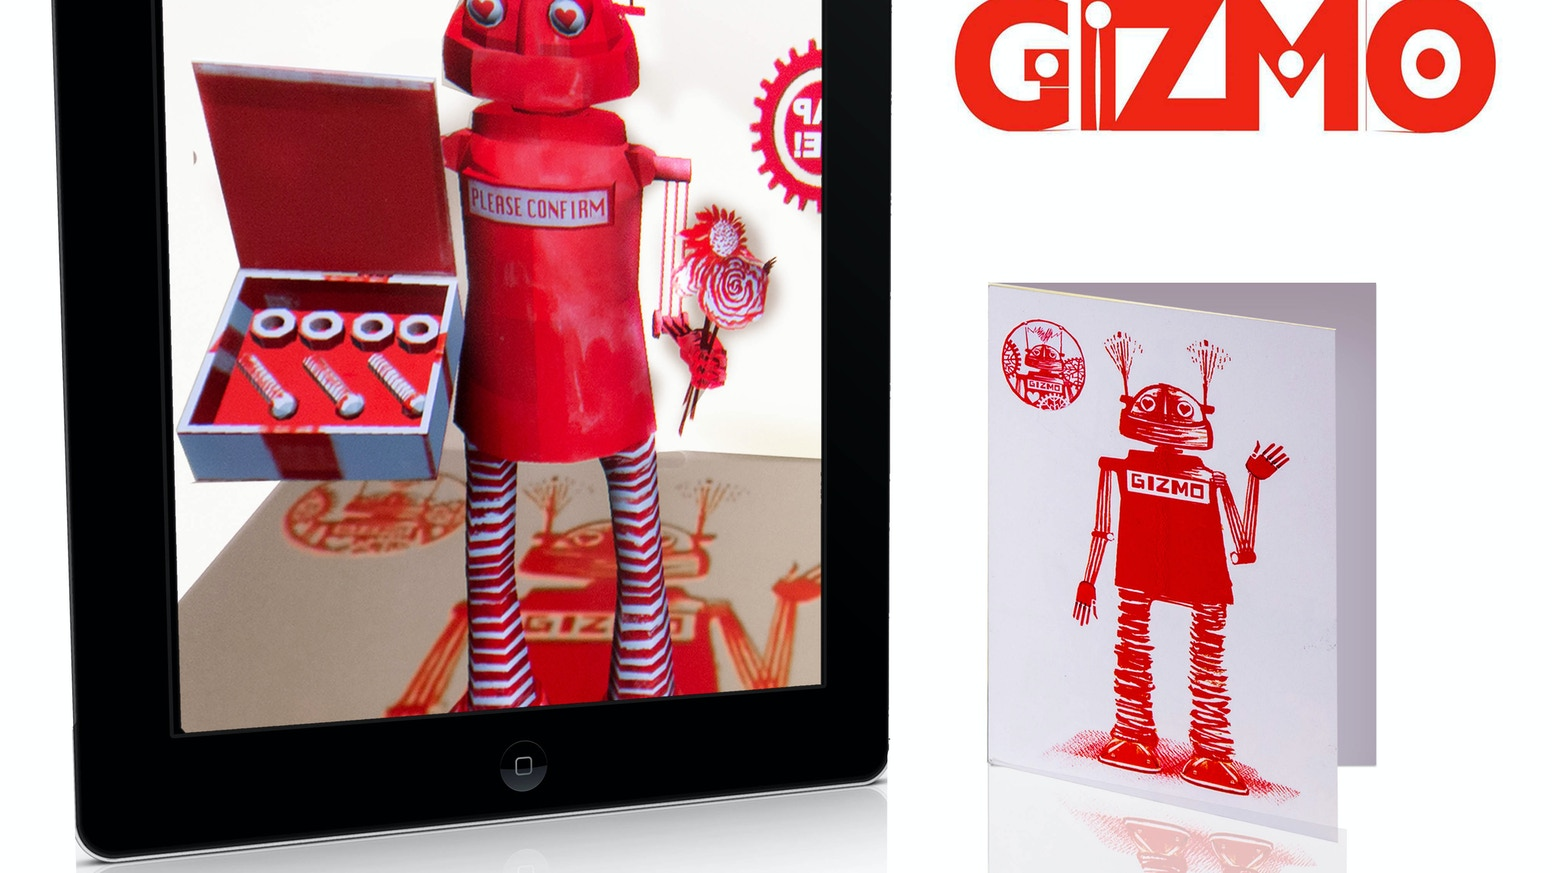 Gizmo Augmented Reality Greeting Cards By John Littleboy Kickstarter